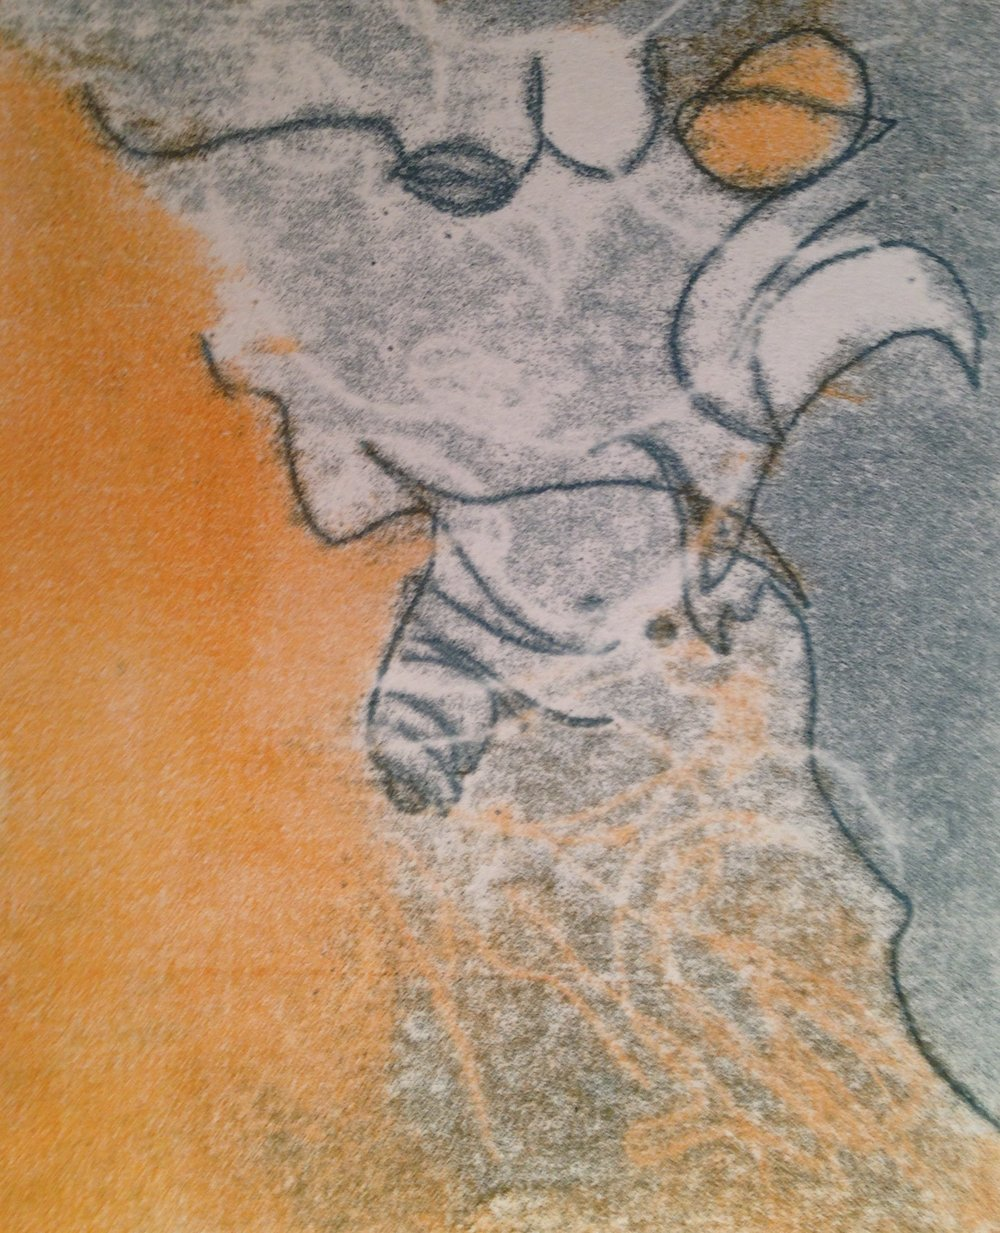 """""""Guy With Orange Nose"""", monotype, 9.5"""" x 12"""", $125 (framed)"""